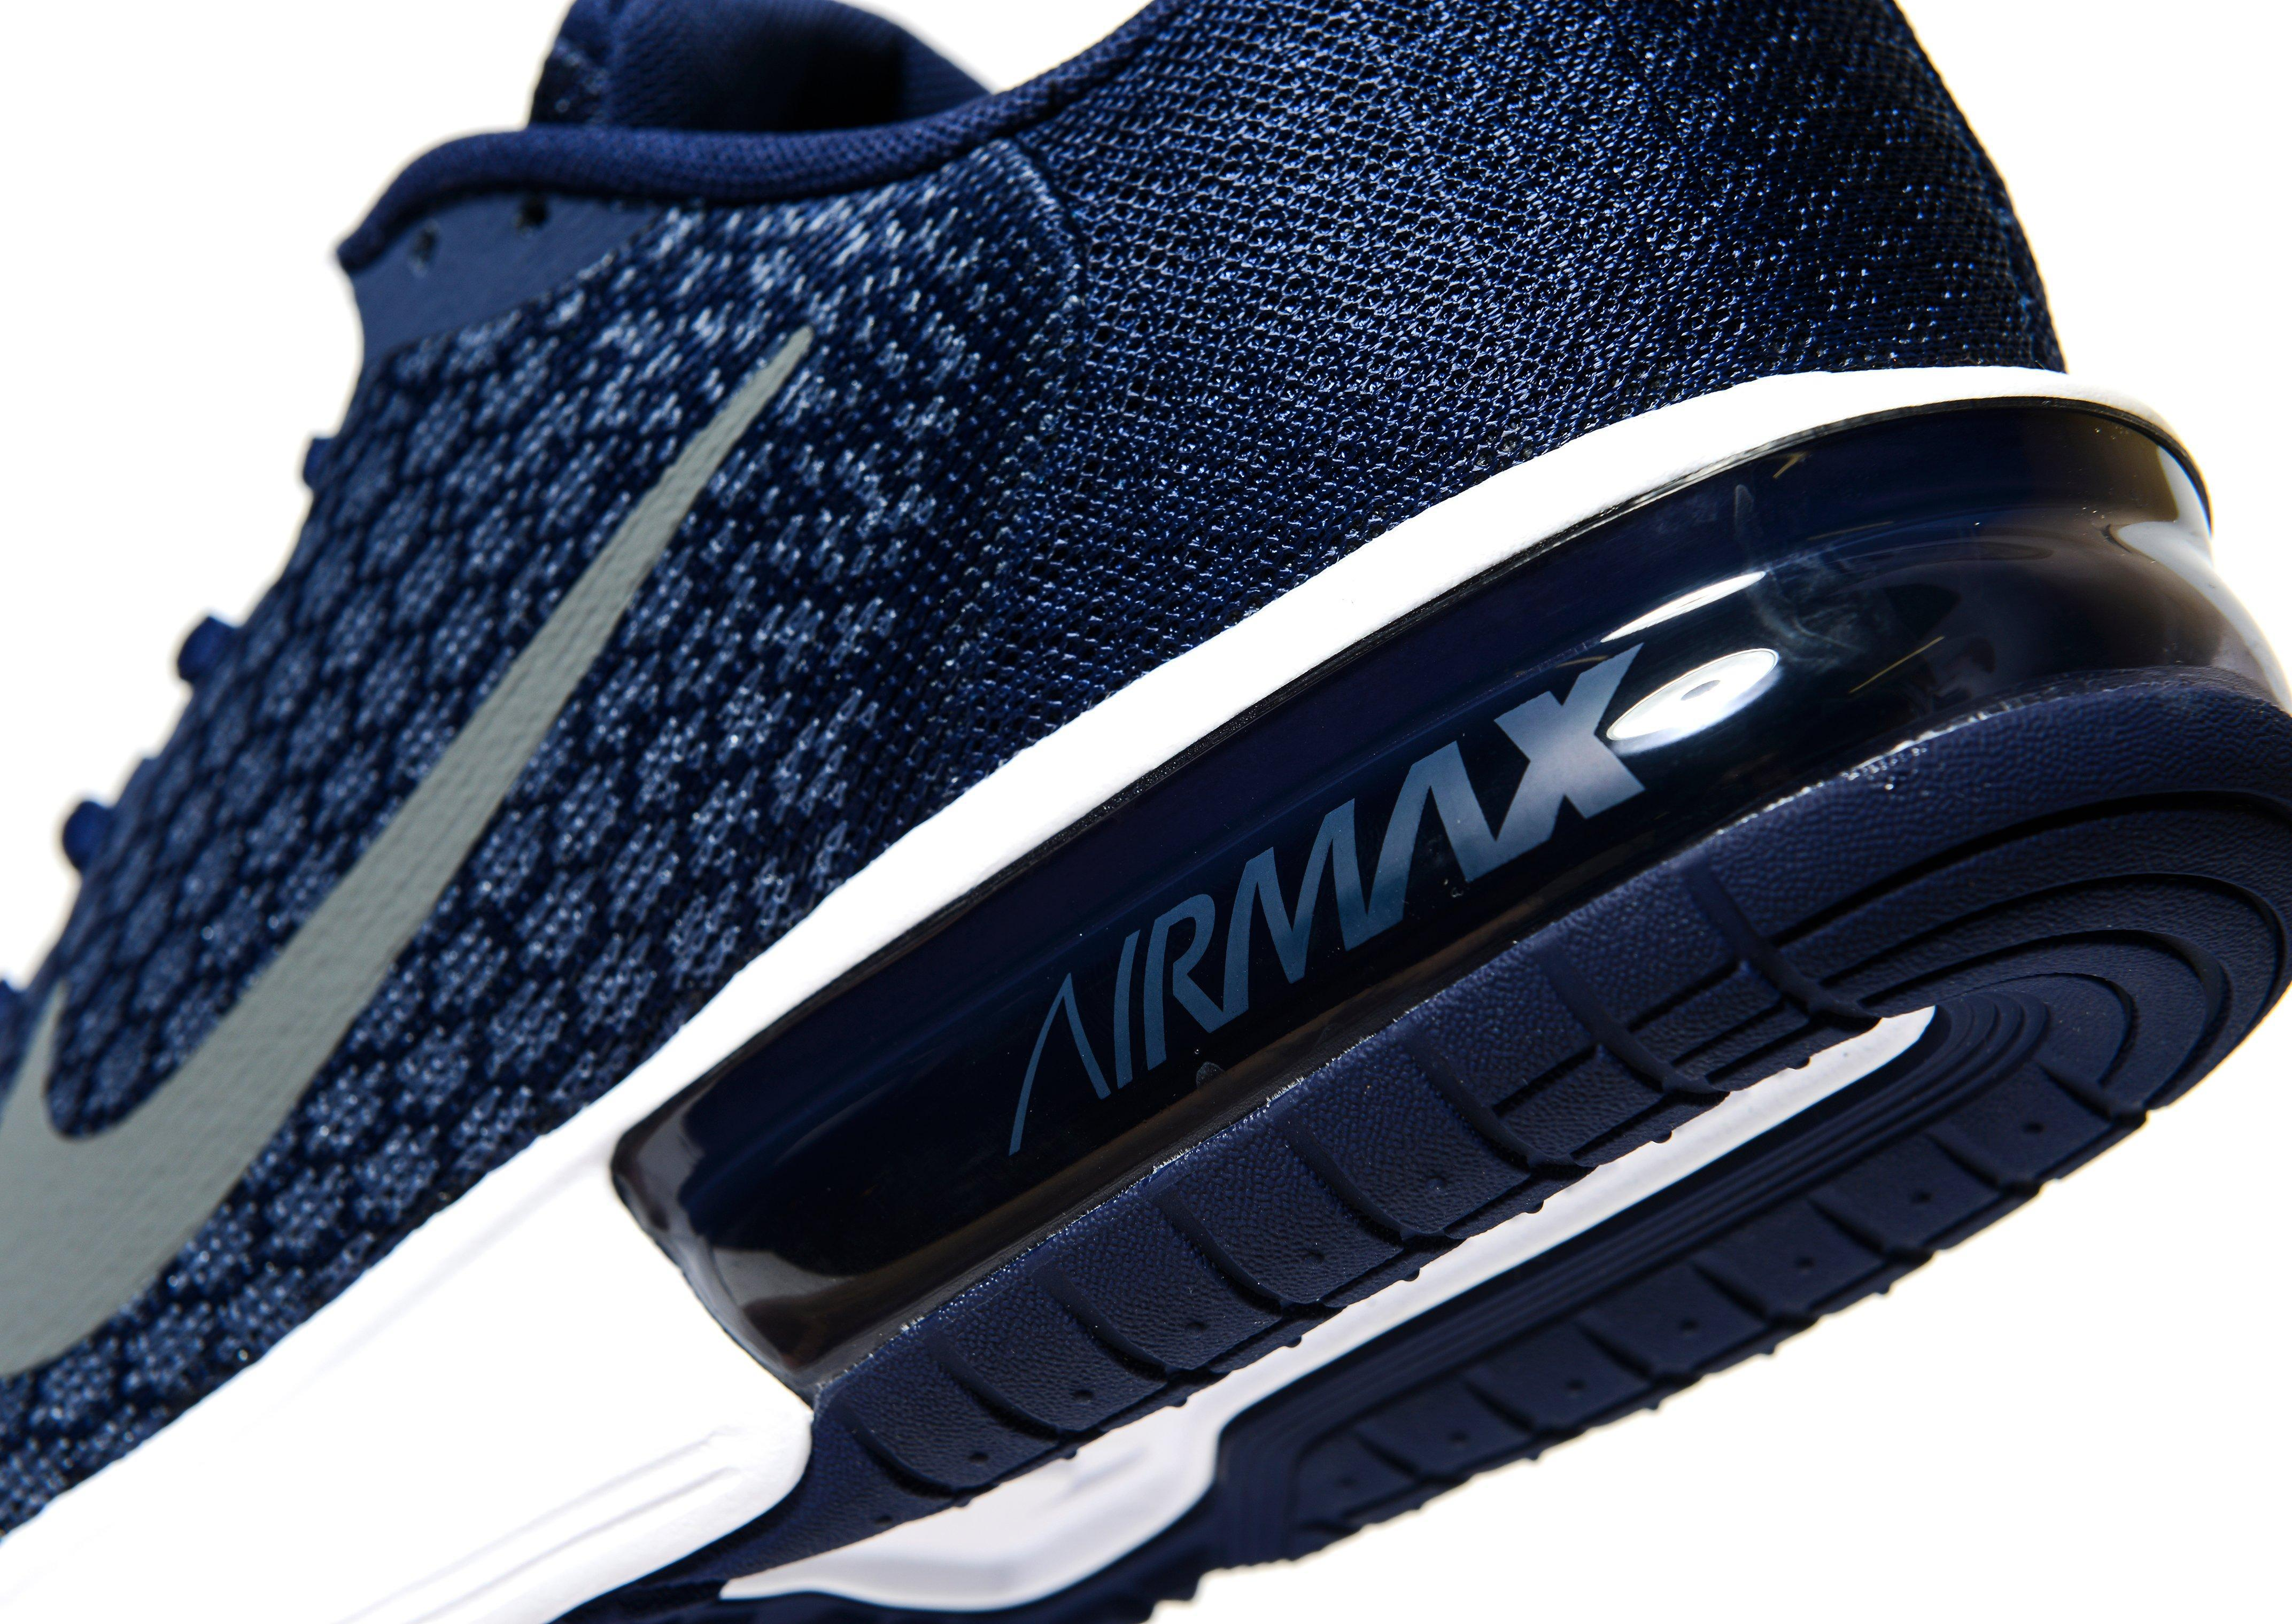 lyst nike air max sequent 2 in blue for men. Black Bedroom Furniture Sets. Home Design Ideas